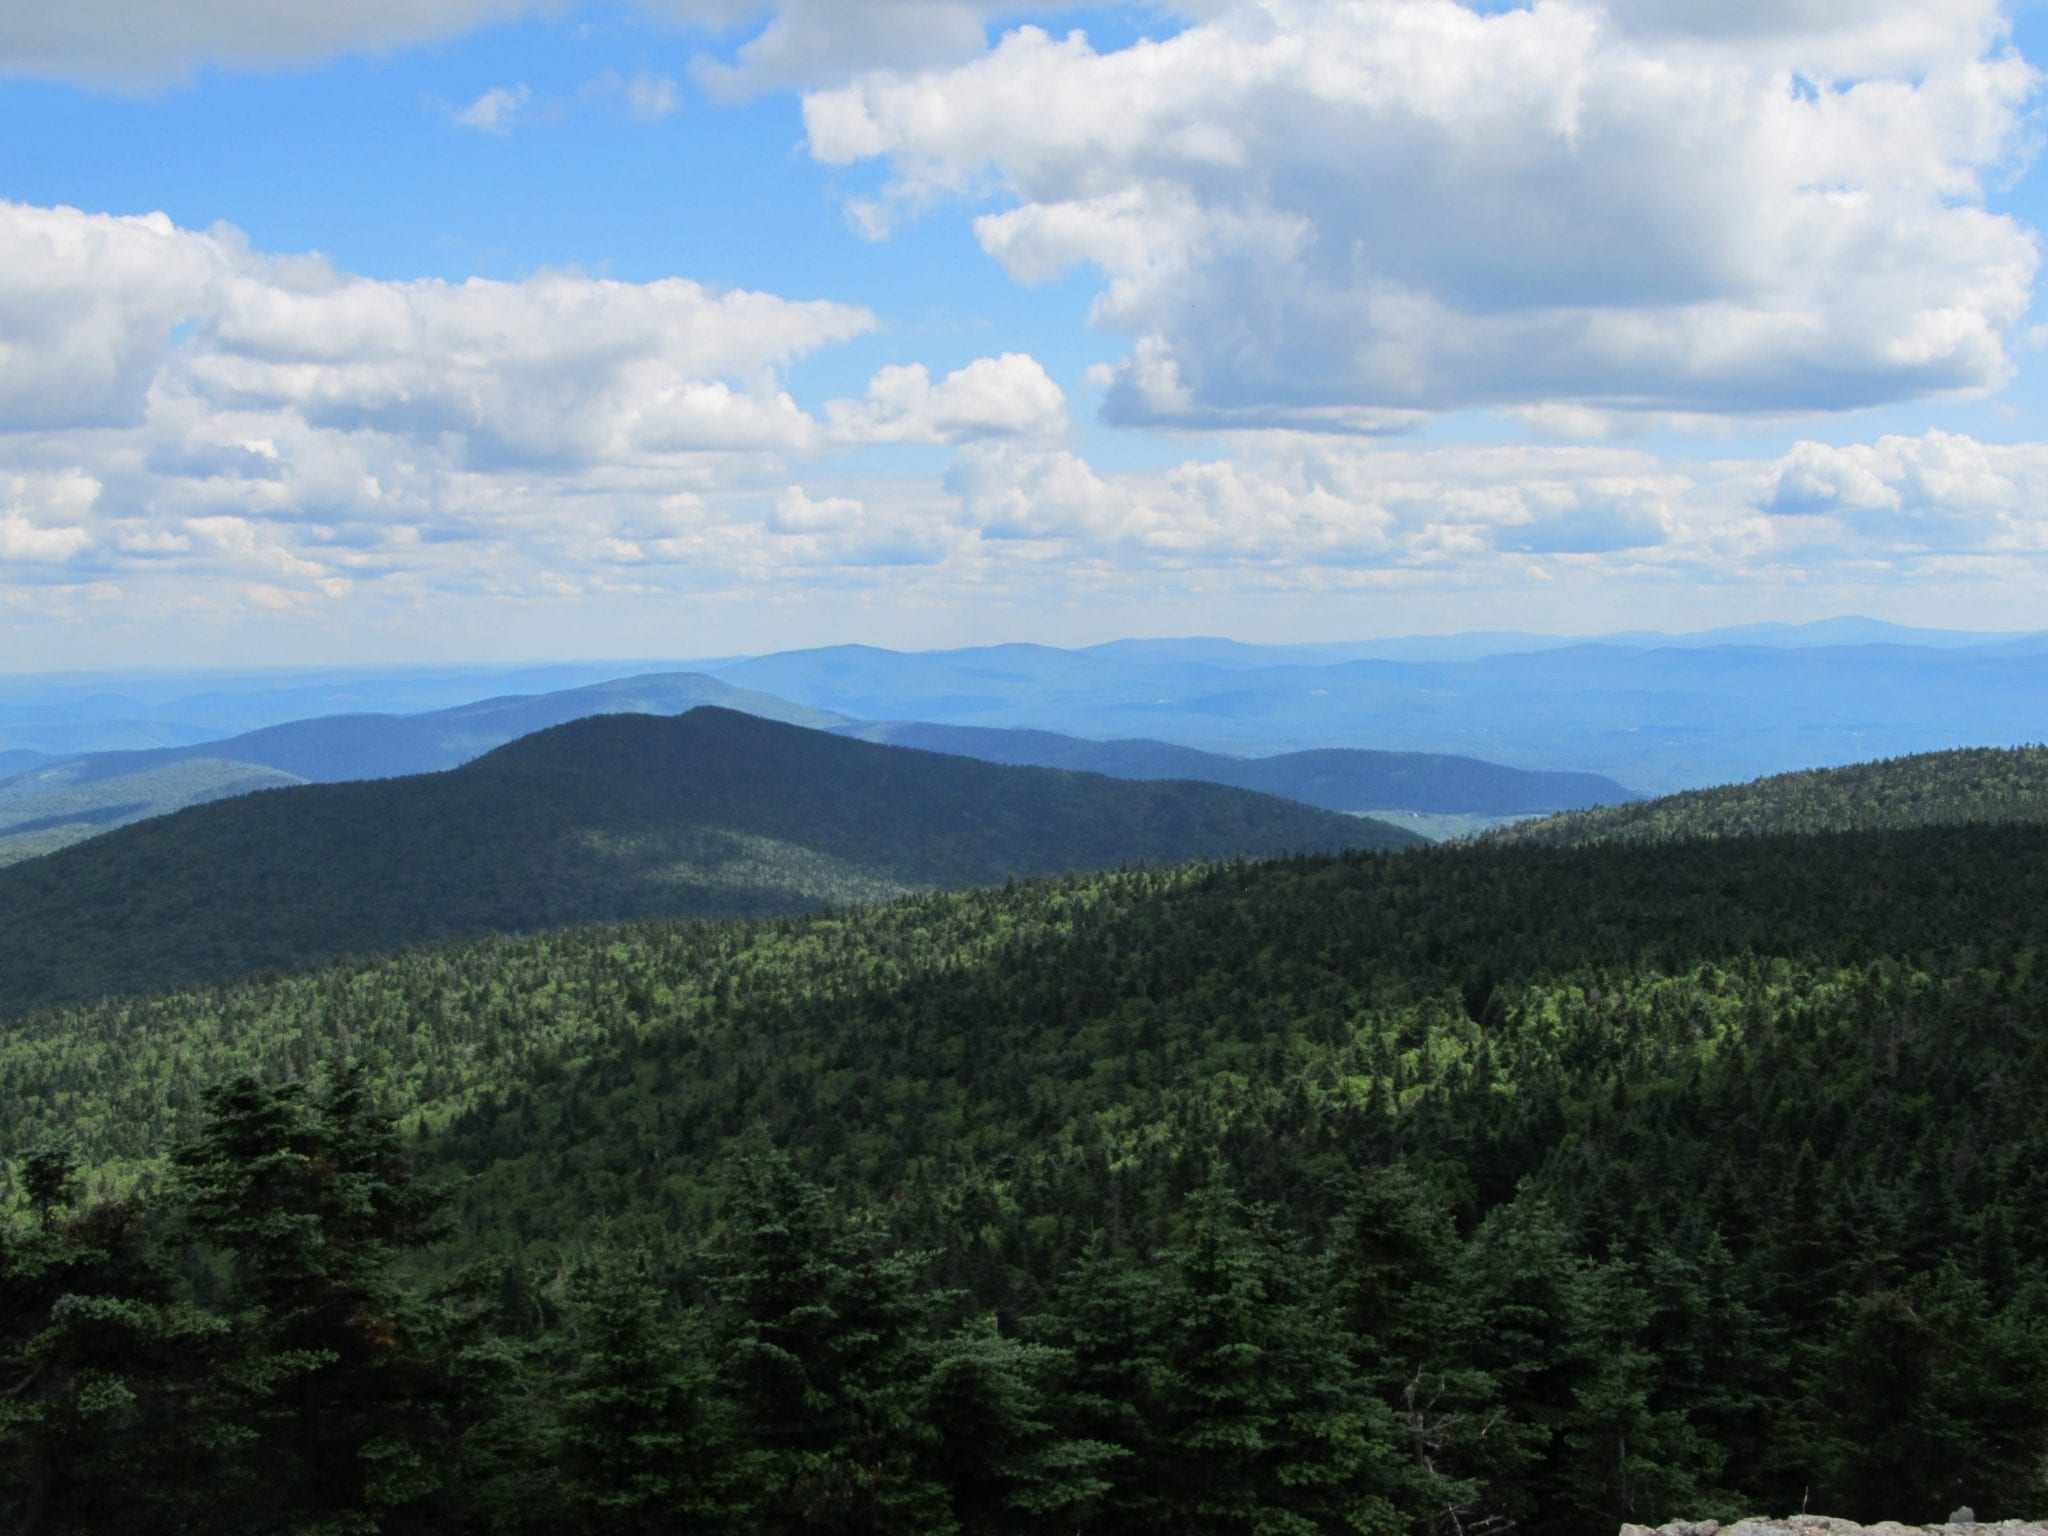 A kosher summer getaway in Killington vt for the whole family